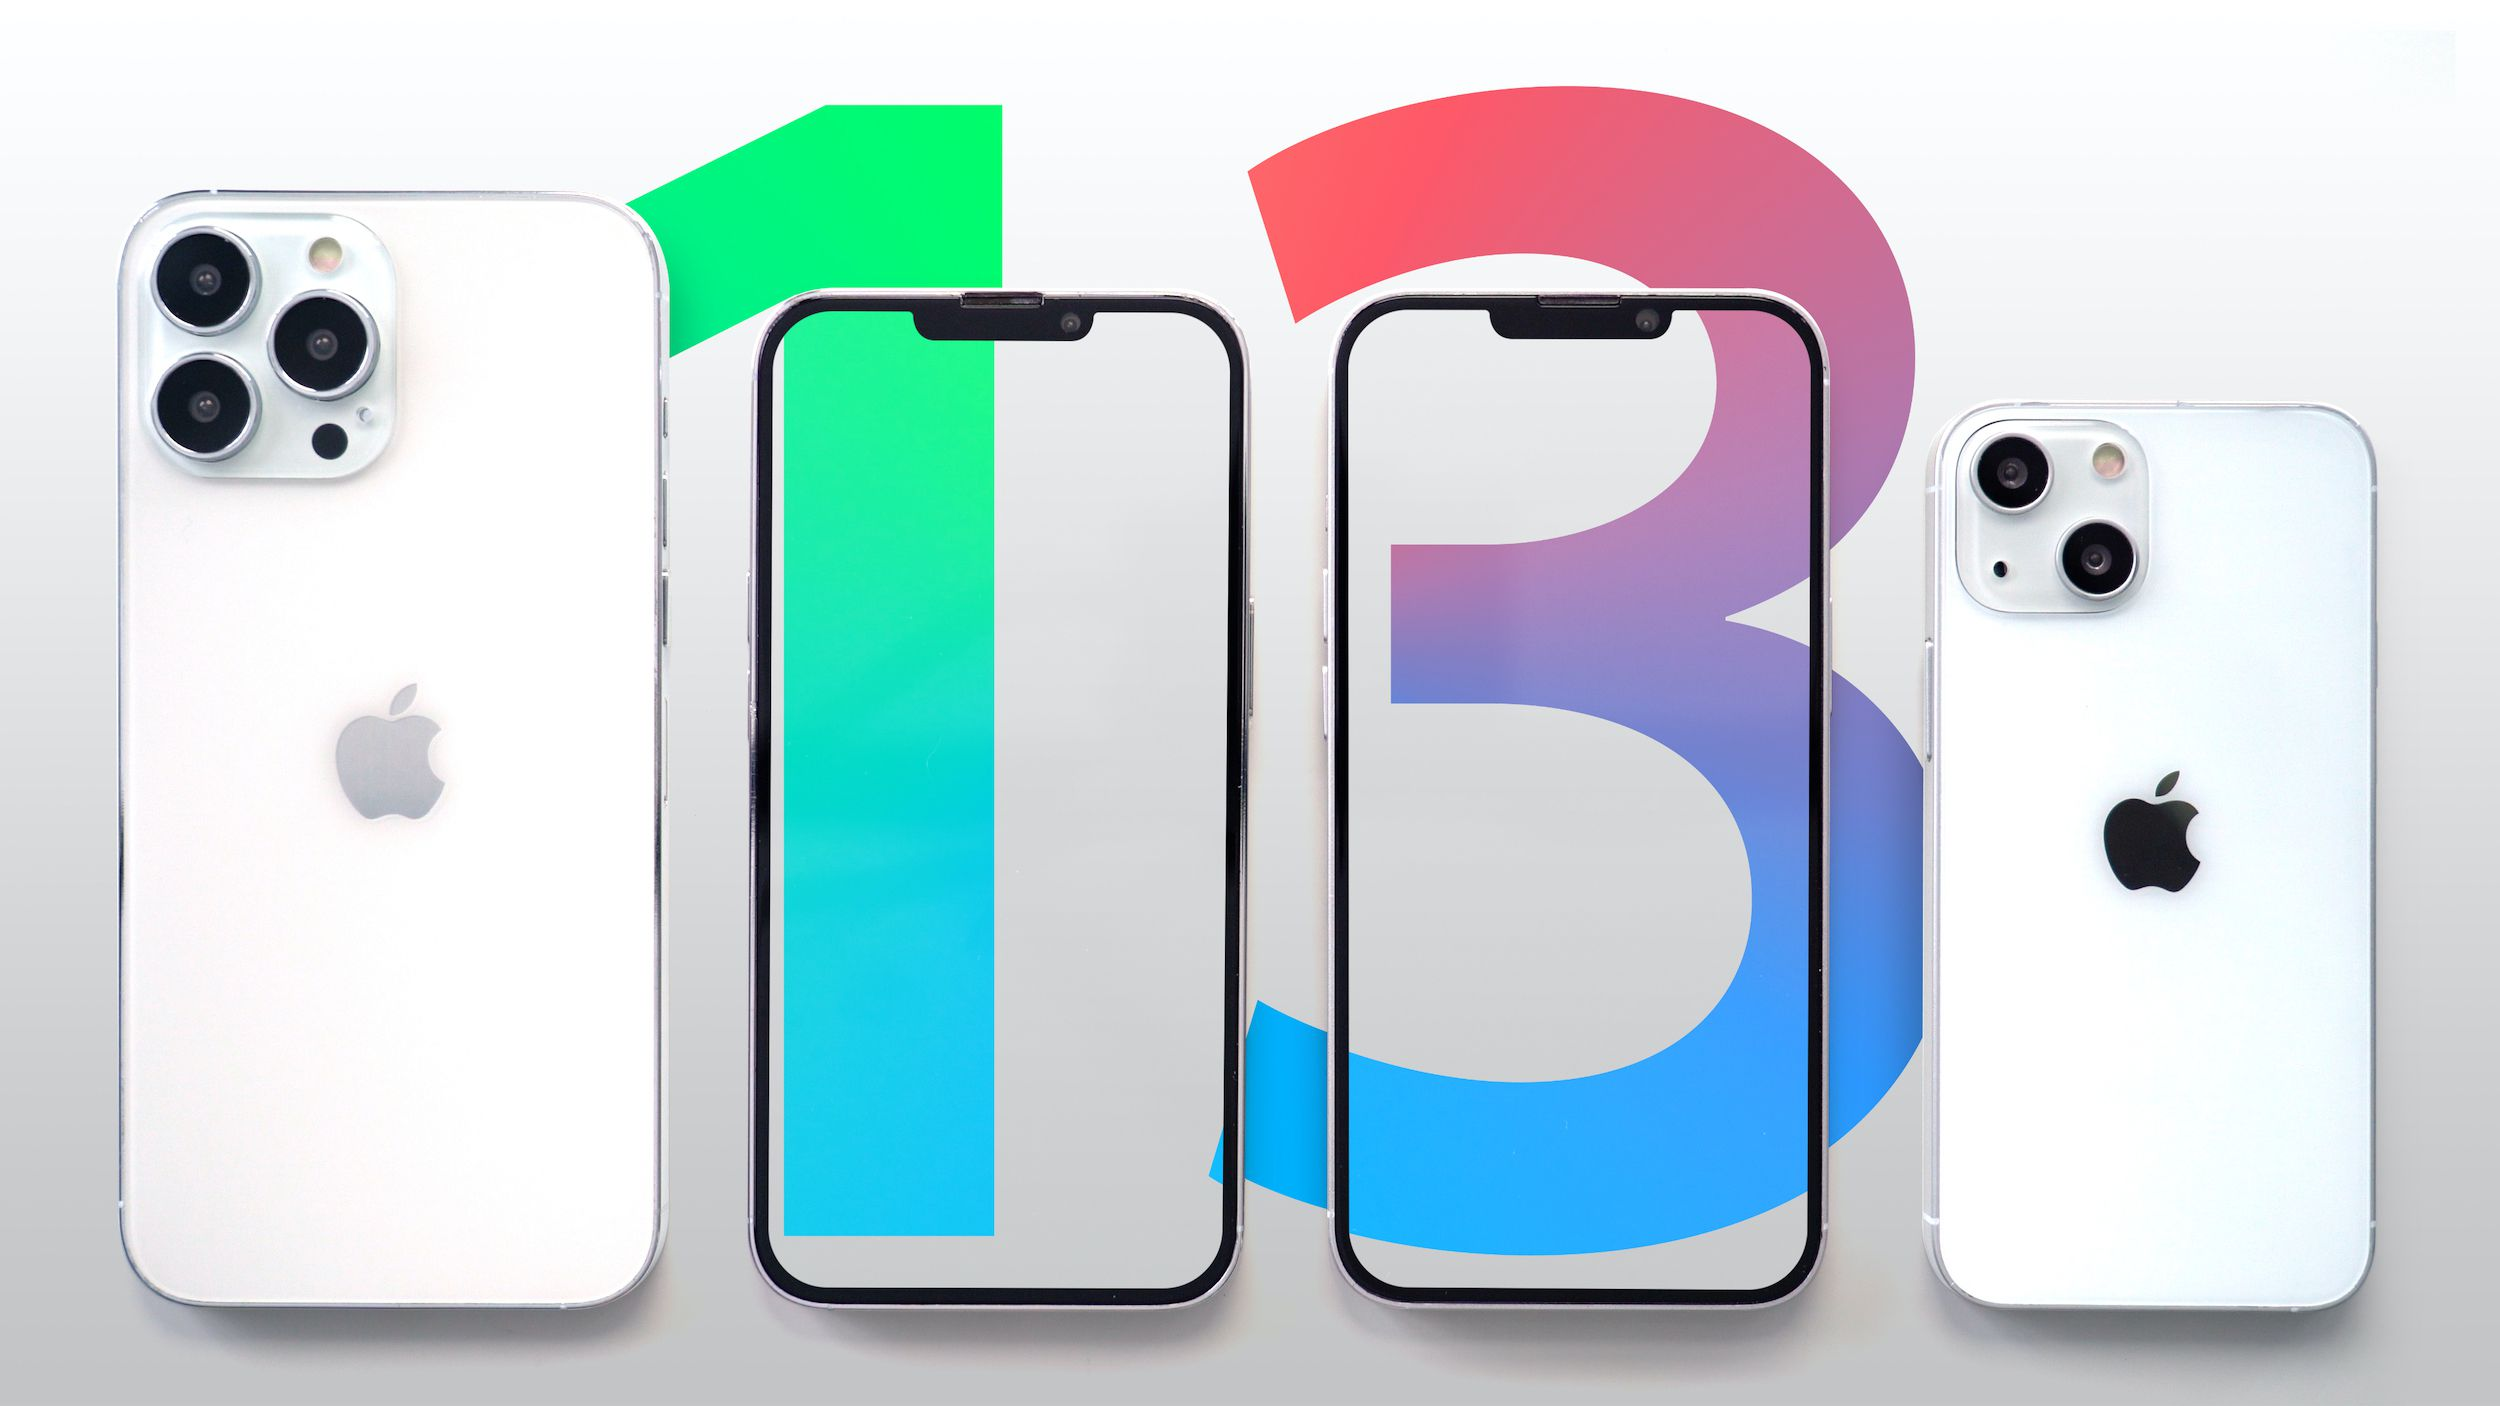 IPhone 13 Pro Runs Geekbench, Performs 55% Better Then IPhone 12 Pro